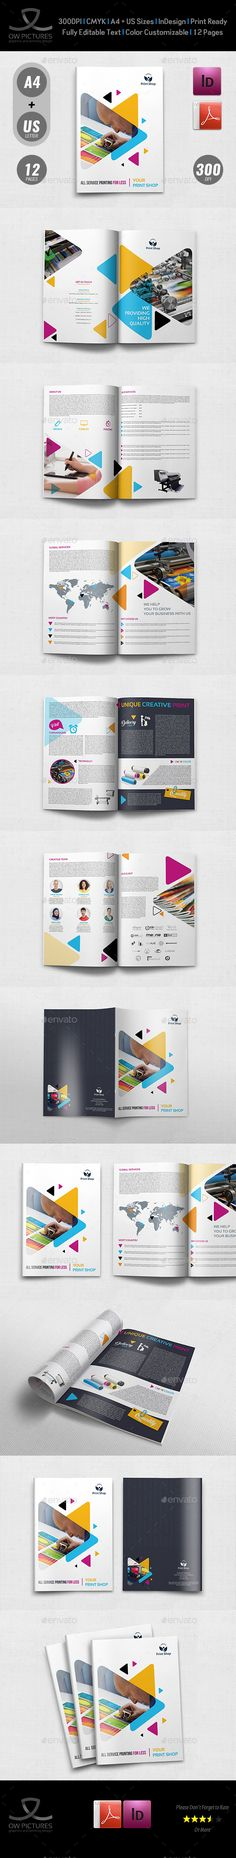 Print Shop Brochure Design Template - 12 Pages - Brochures Print Templates InDesign InDD. Download here: https://graphicriver.net/item/print-shop-brochure-template-12-pages/19300456?ref=yinkira